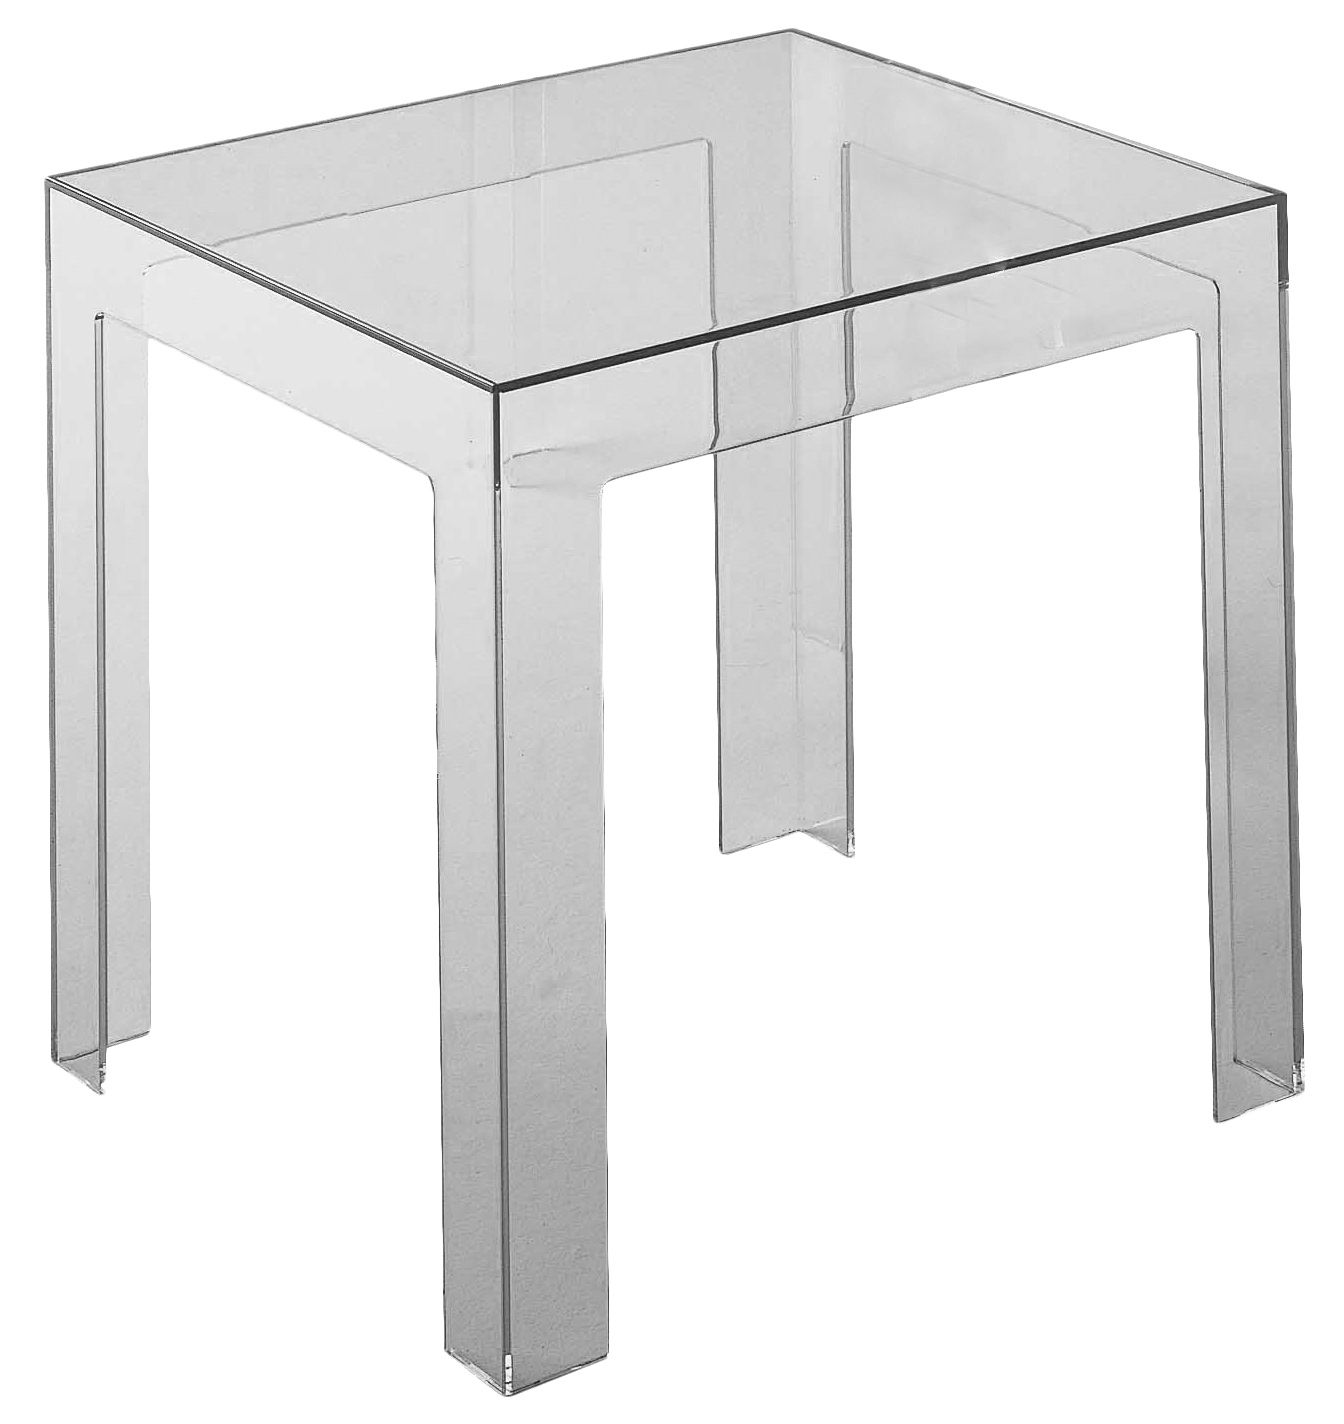 Furniture - Coffee Tables - Jolly End table by Kartell - Grey - Polycarbonate